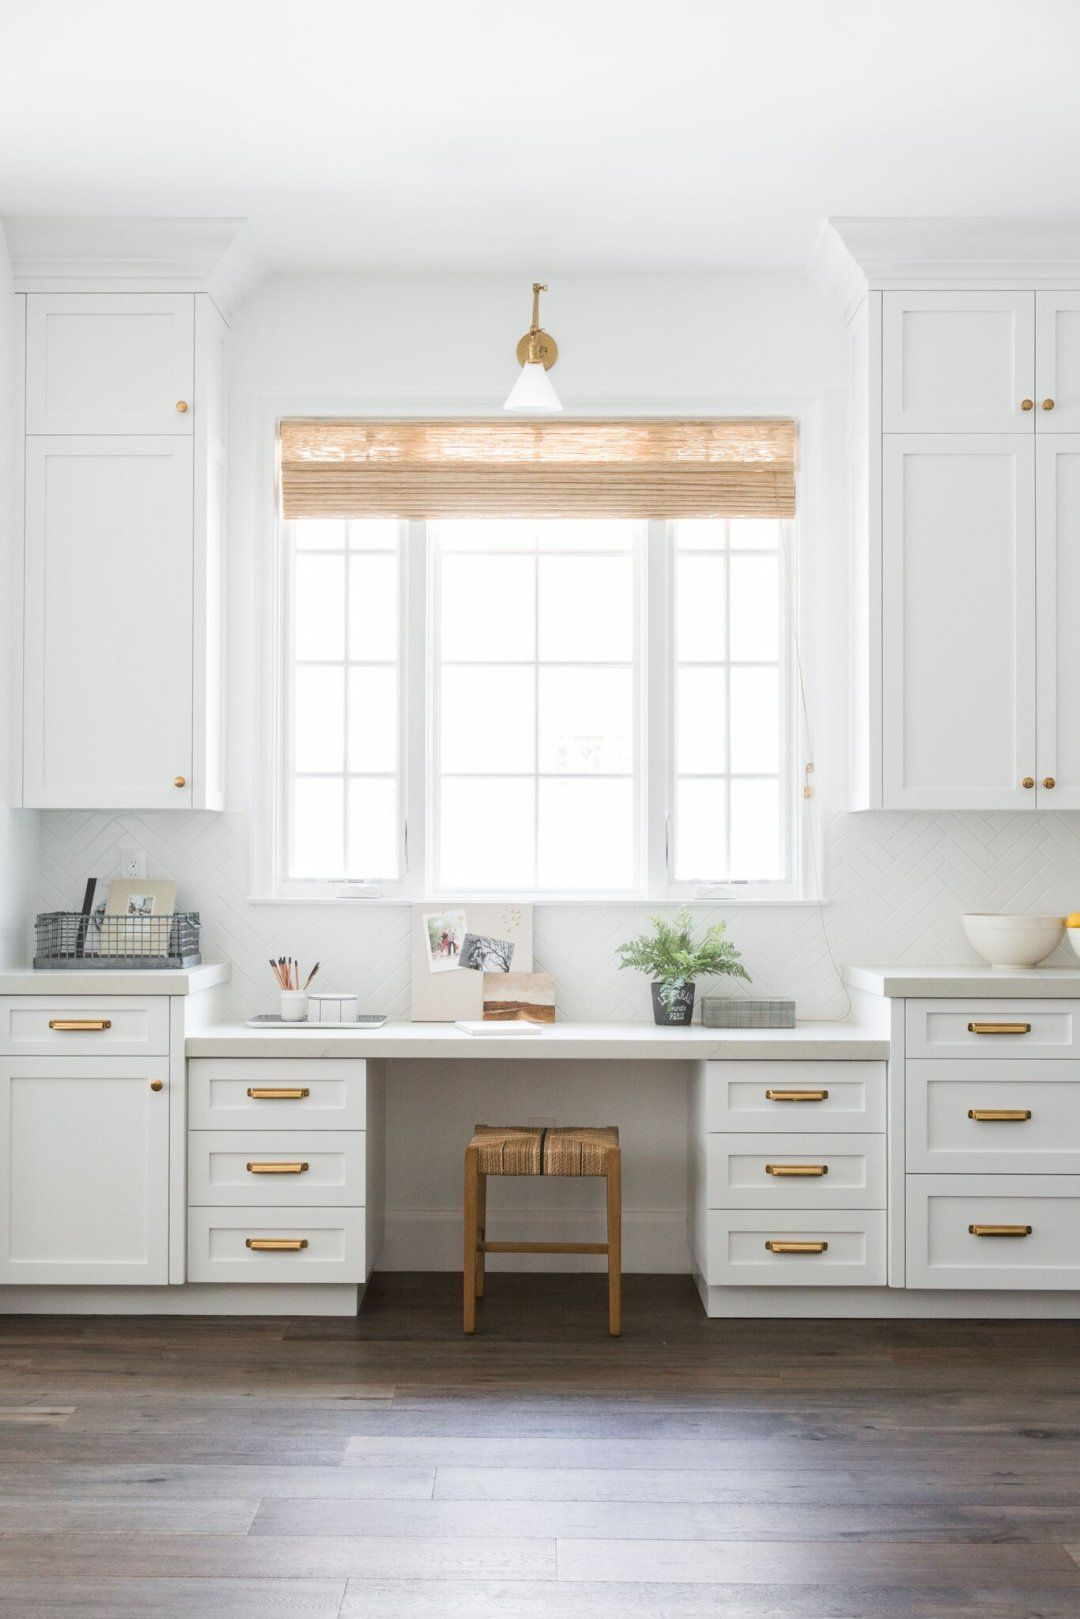 calabasas remodel: kitchen + laundry room reveal in 2018 | dwellings